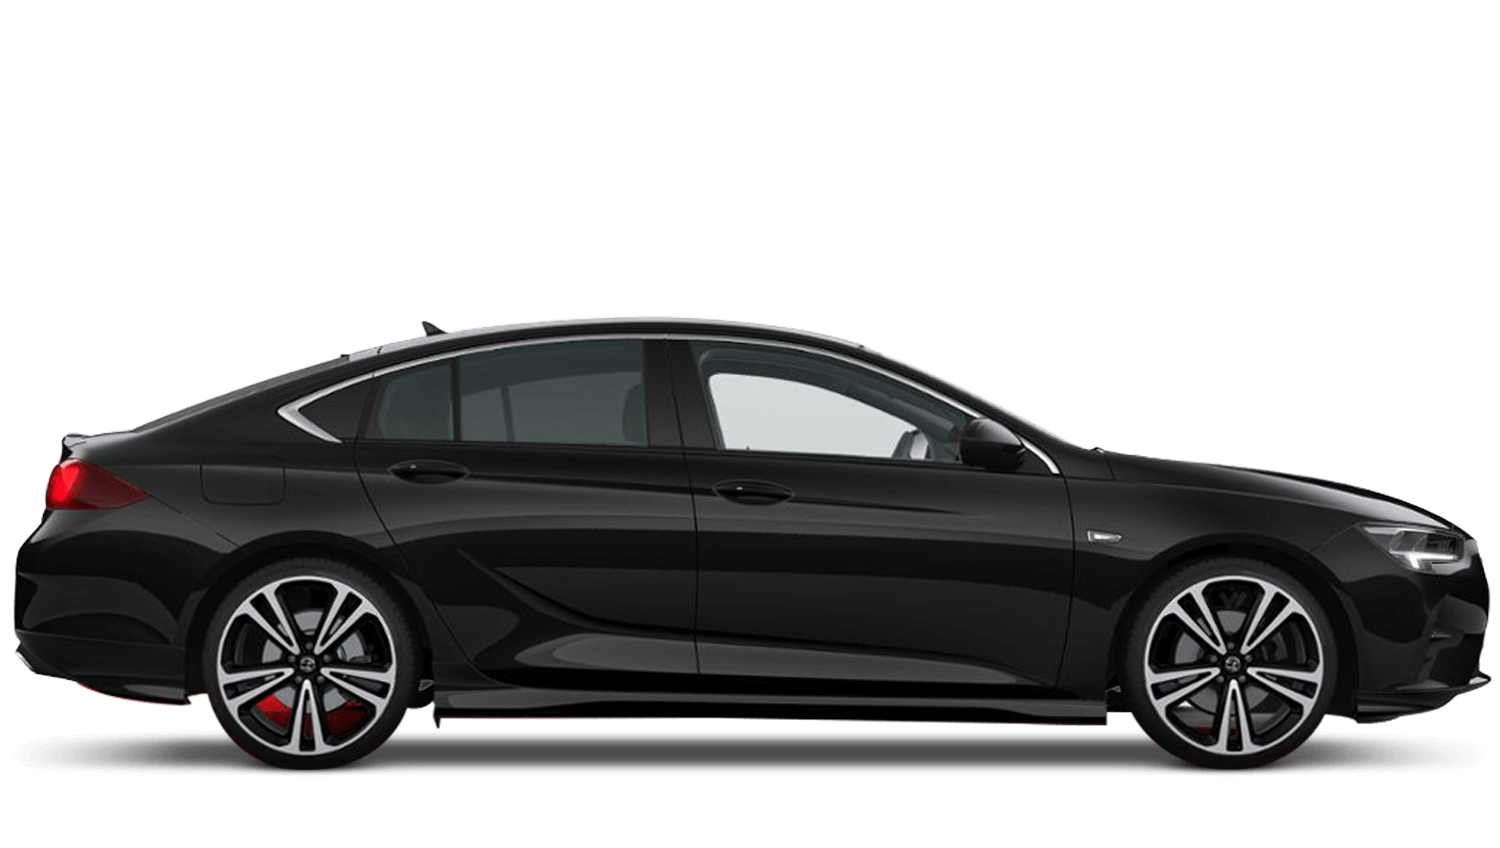 Mineral Black (Metallic) New Vauxhall Insignia